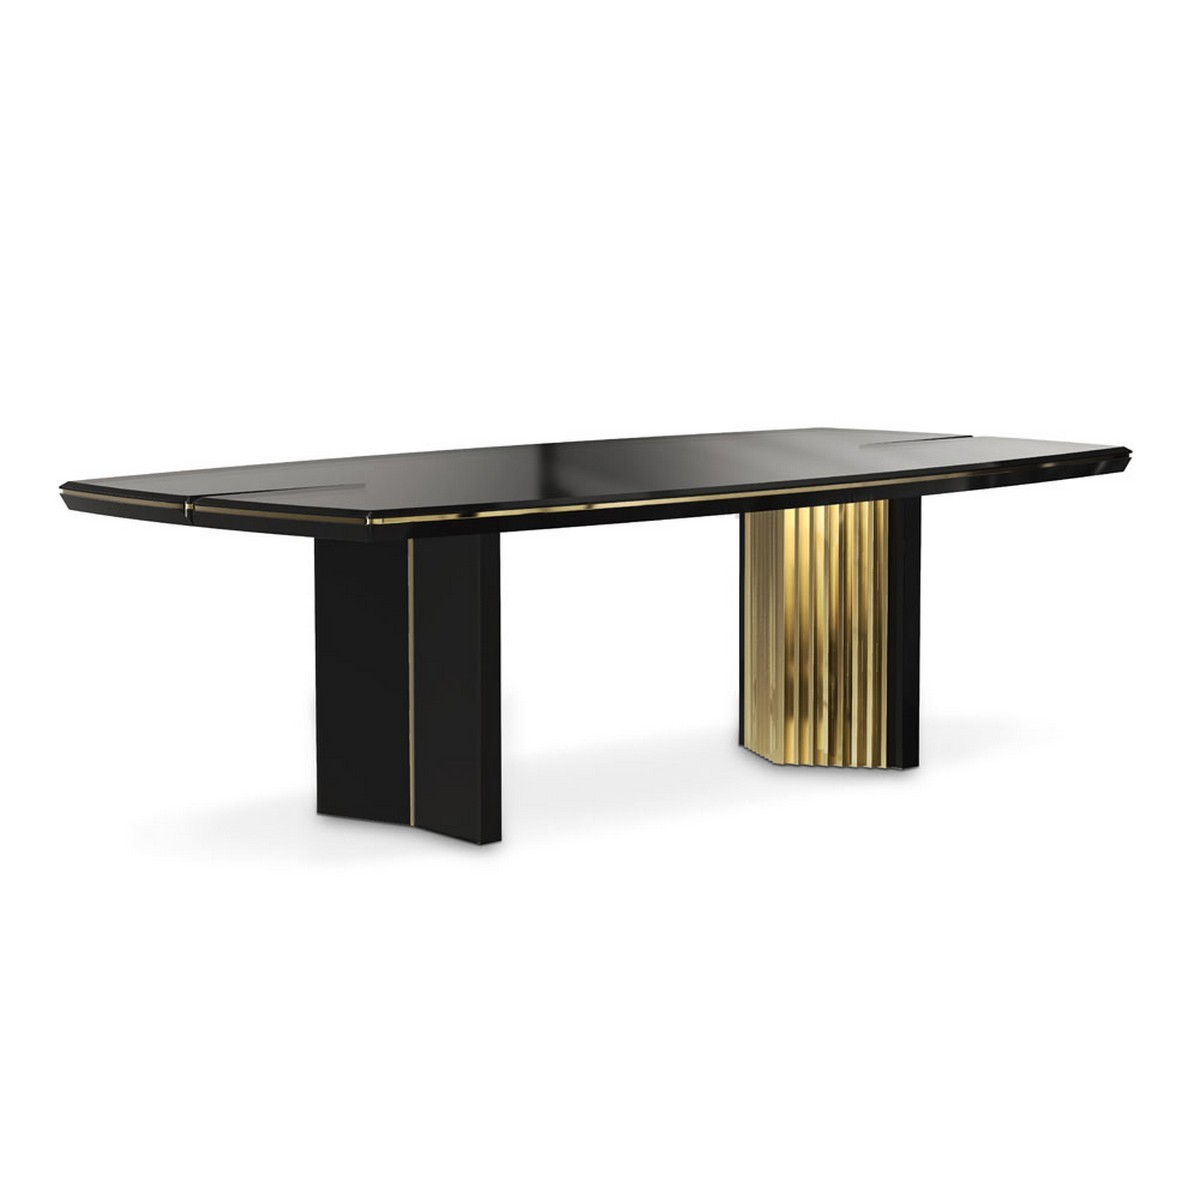 Trendy Dining Tables For 2019 trendy dining tables Trendy Dining Tables For 2019 beyond2